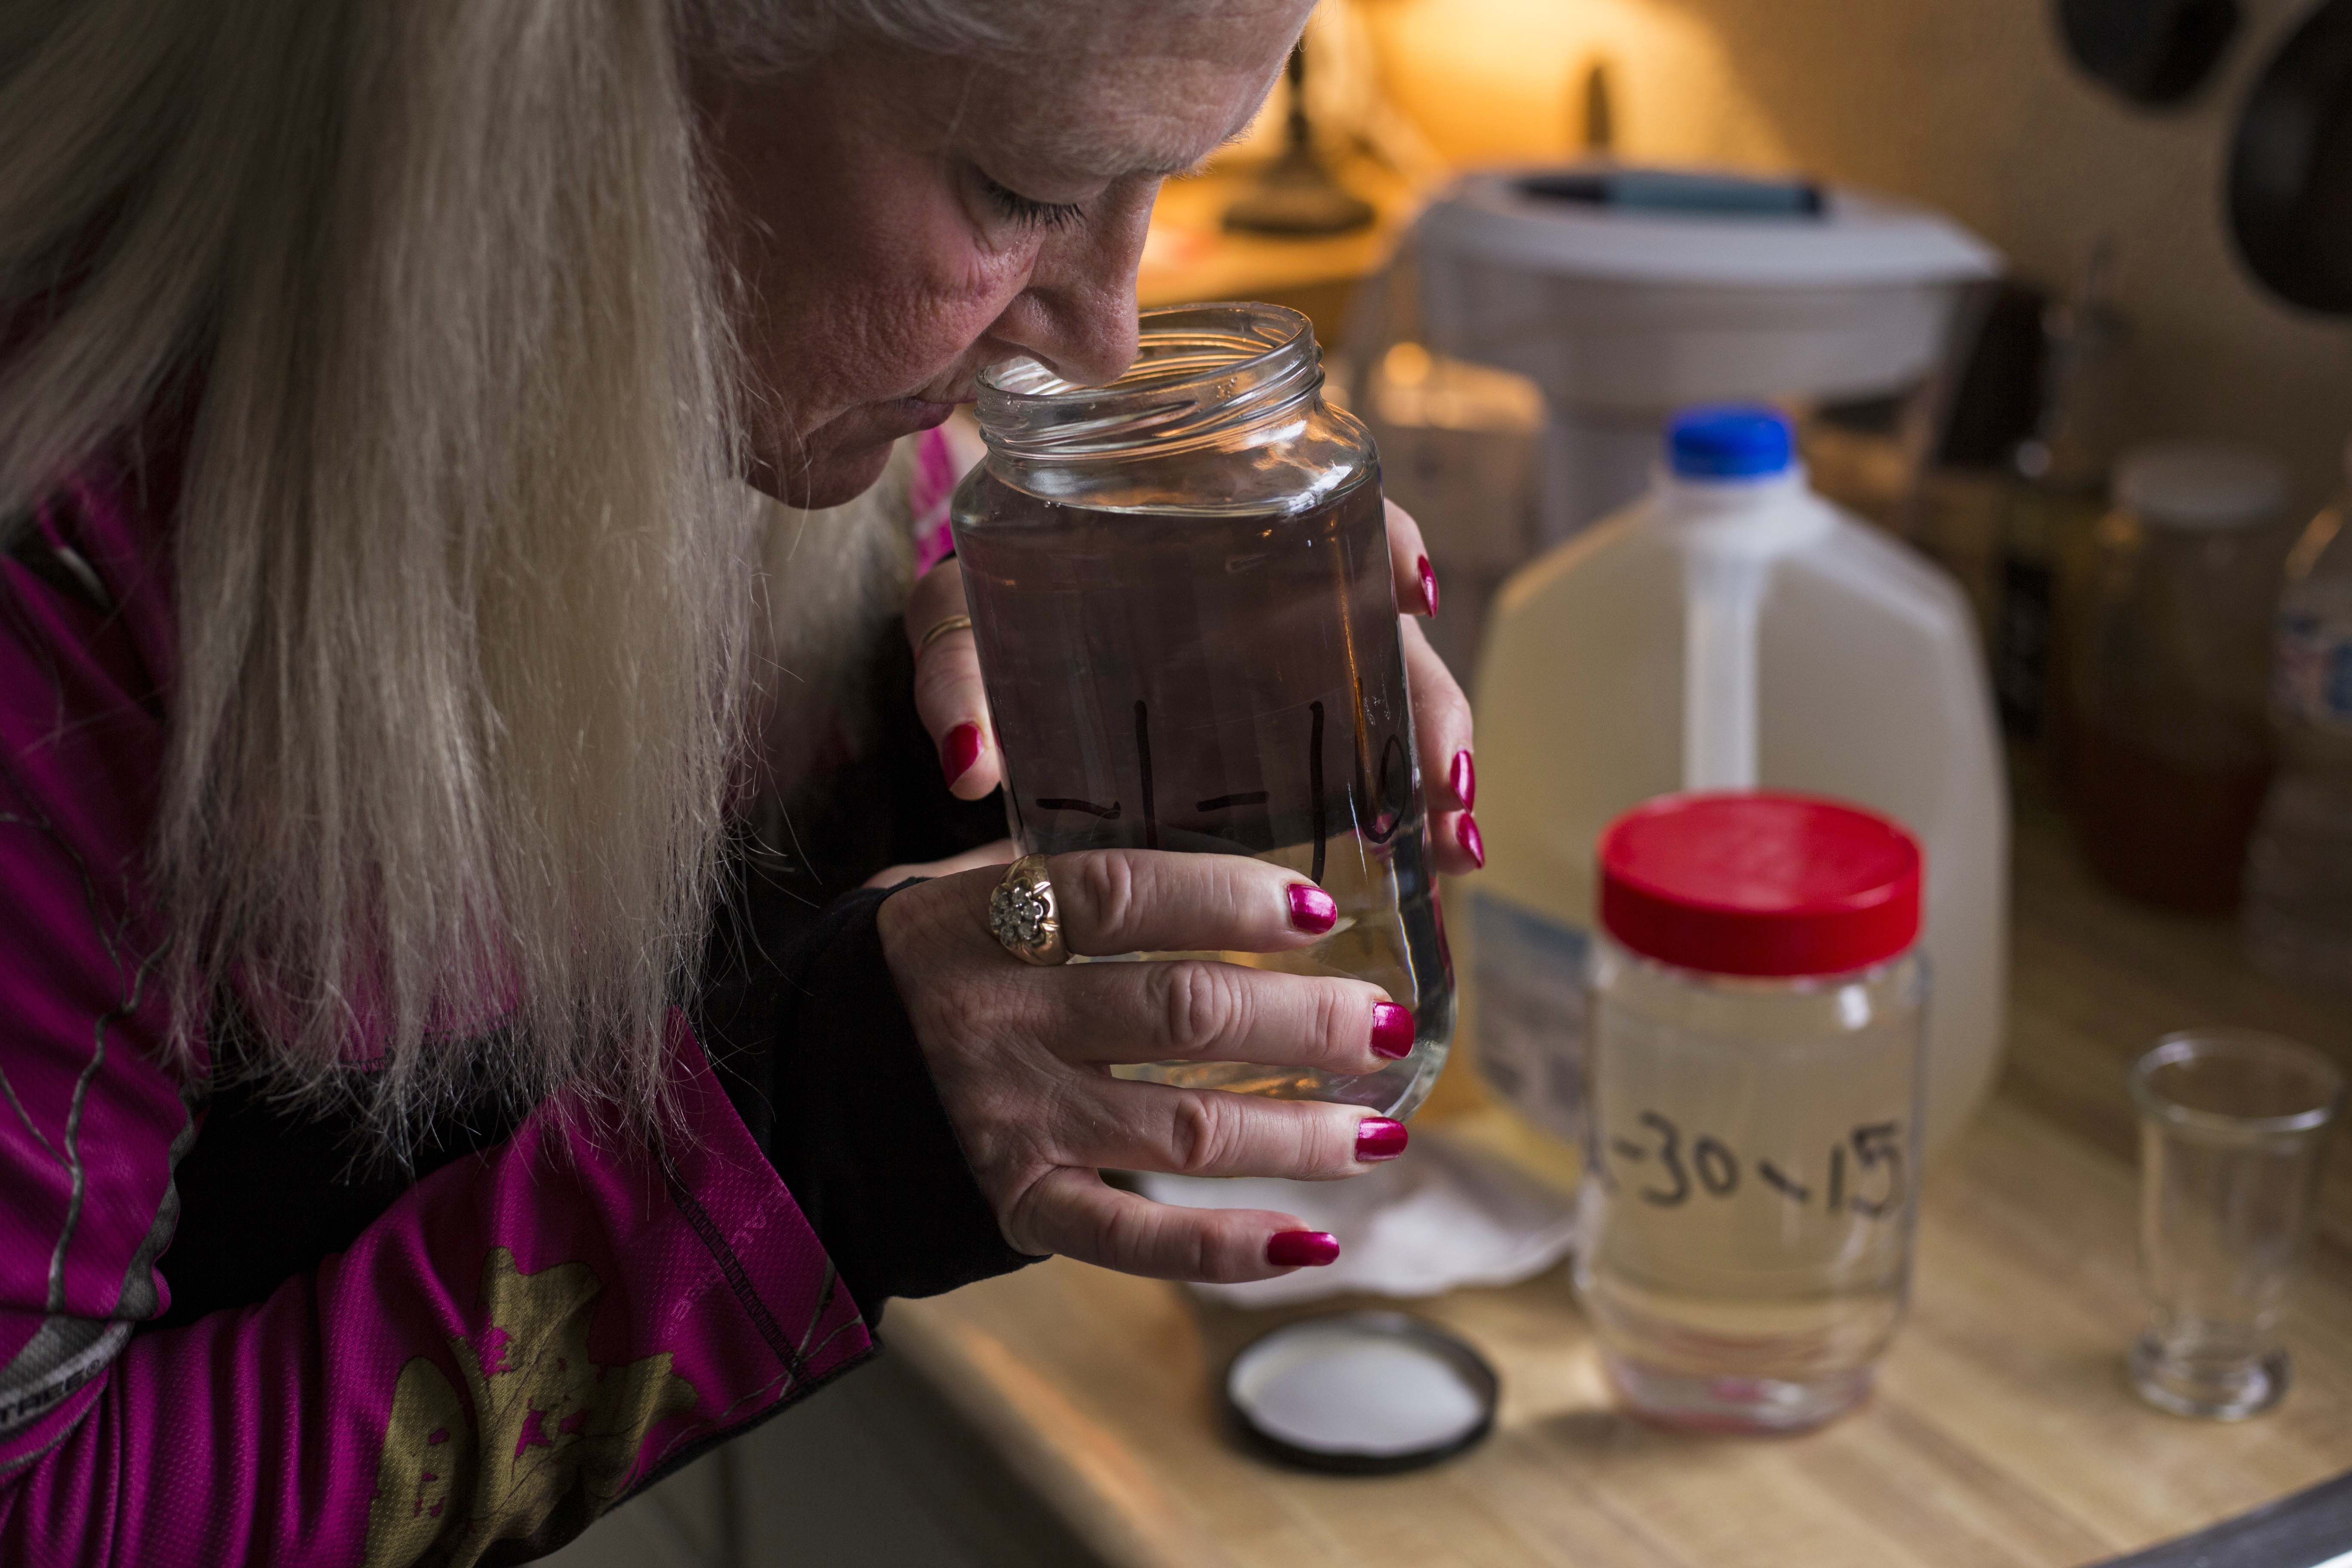 Gladyes Williamson smells a jar of water she collected from her tap earlier that month on January 13, 2016. Williamson has been recording her struggle with Flint's water crisis since the city switched water sources in early 2014. (Brittany Greeson/GroundTruth)